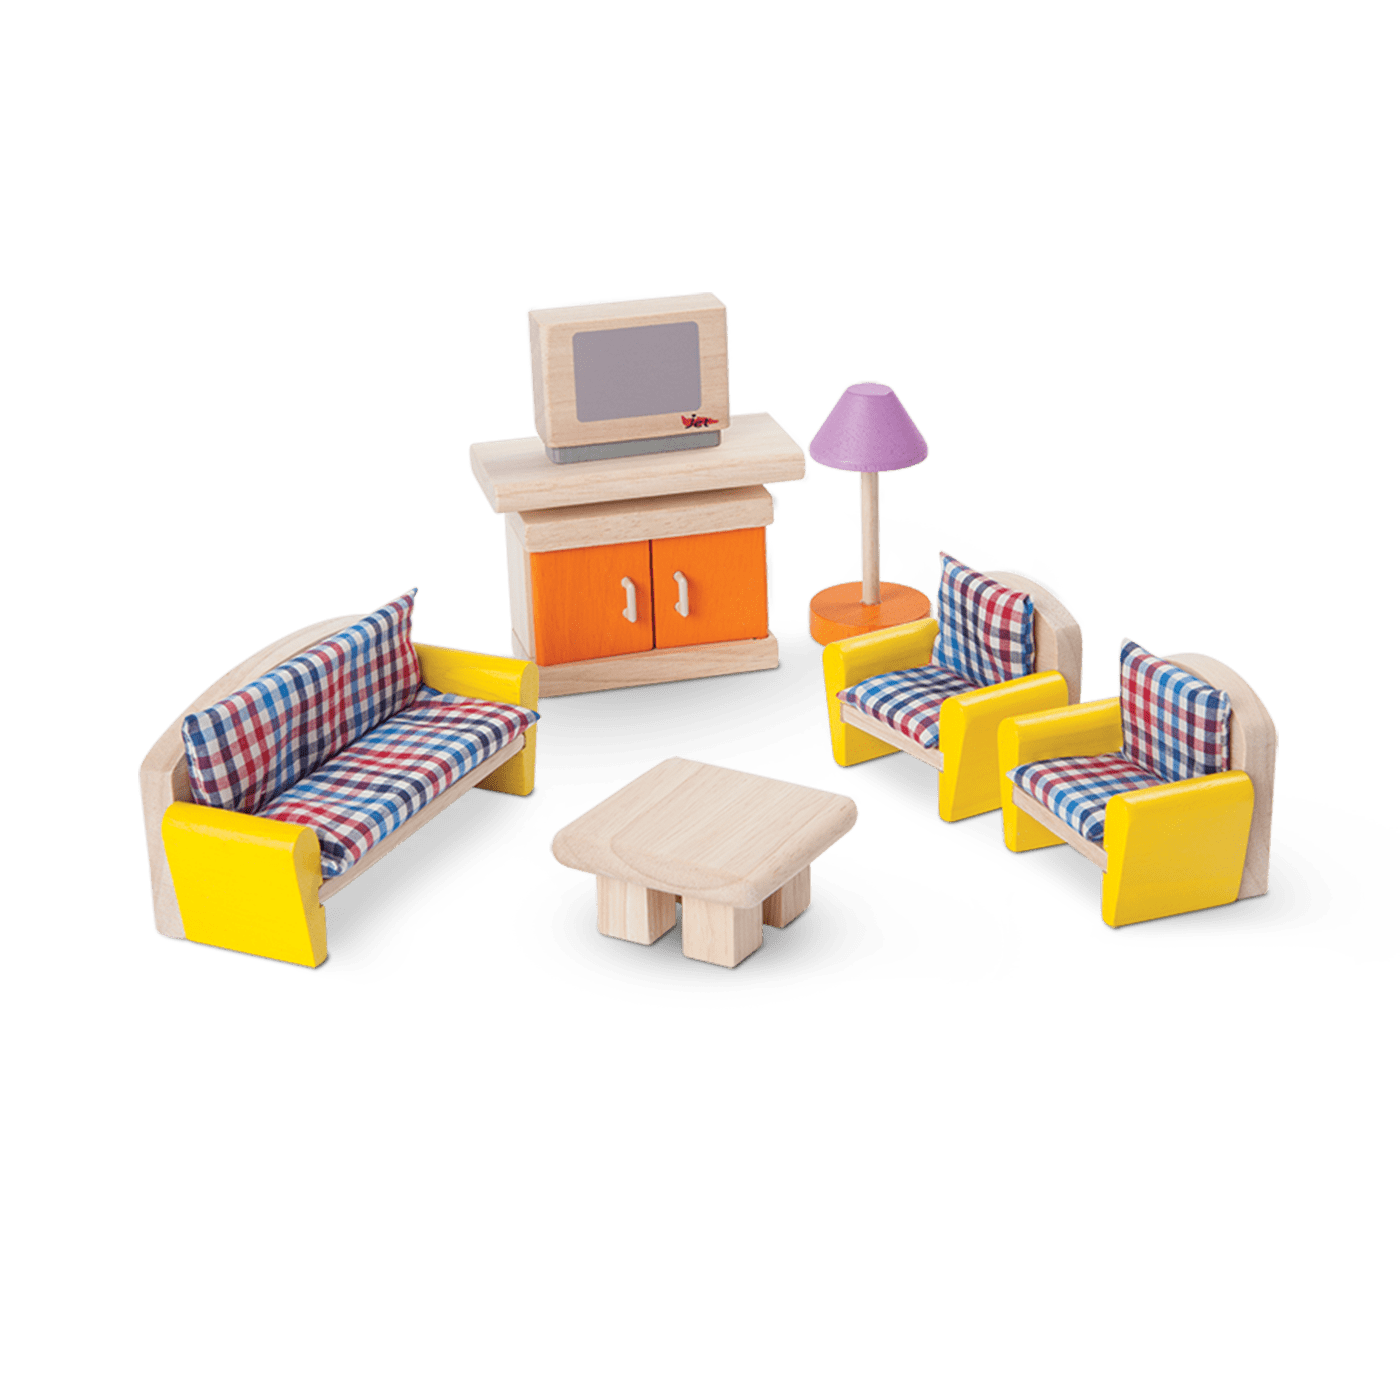 7307_PlanToys_LIVING_ROOM_Pretend_Play_Imagination_Coordination_Language_and_Communications_Social_Fine_Motor_3yrs_Wooden_toys_Education_toys_Safety_Toys_Non-toxic_0.png